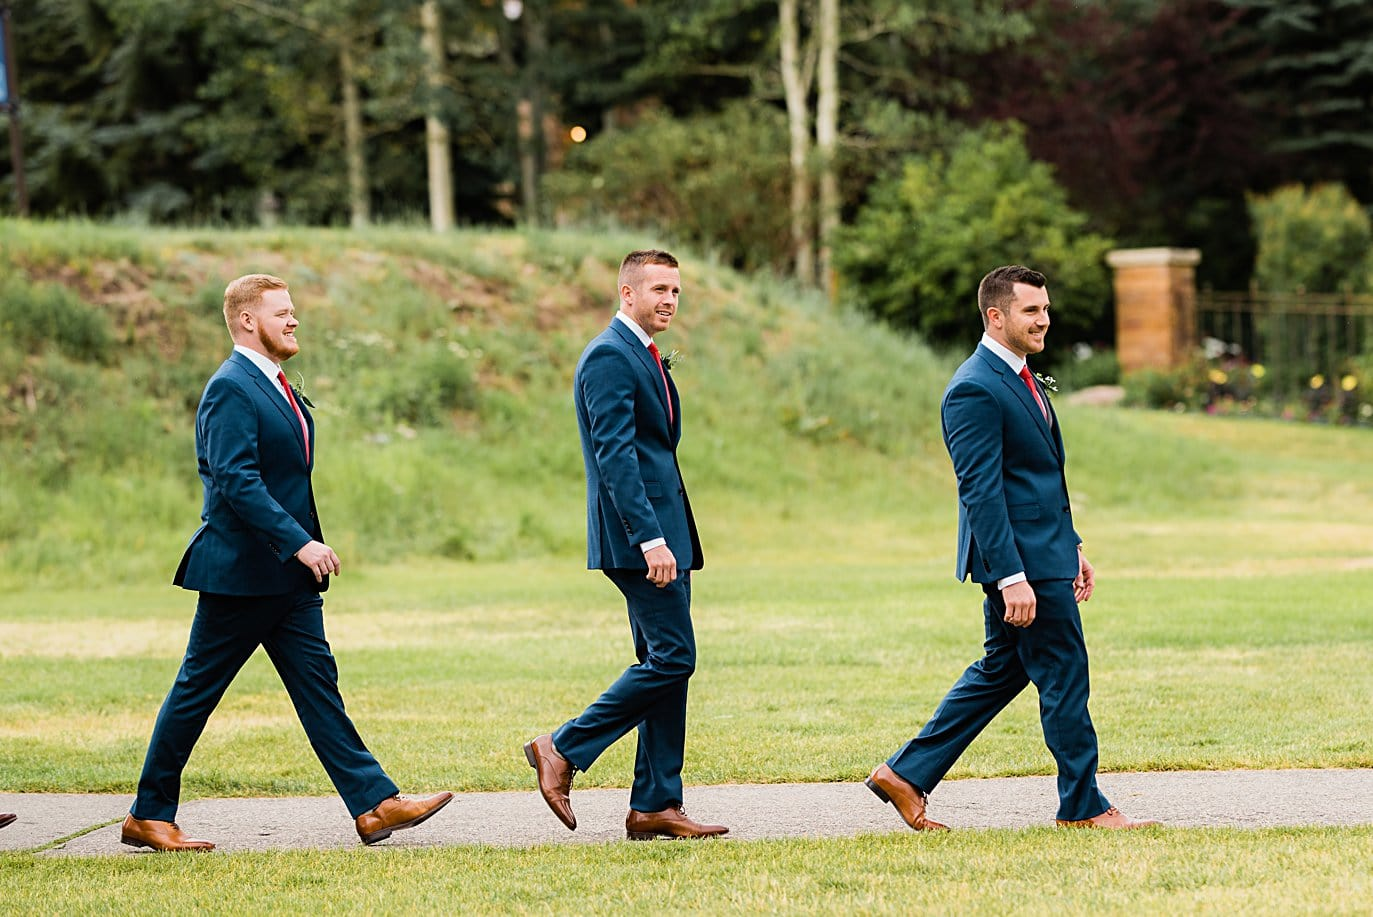 groom and groomsmen walk into outdoor wedding ceremony at Larkspur Vail Wedding by Lyons Wedding photographer Jennie Crate